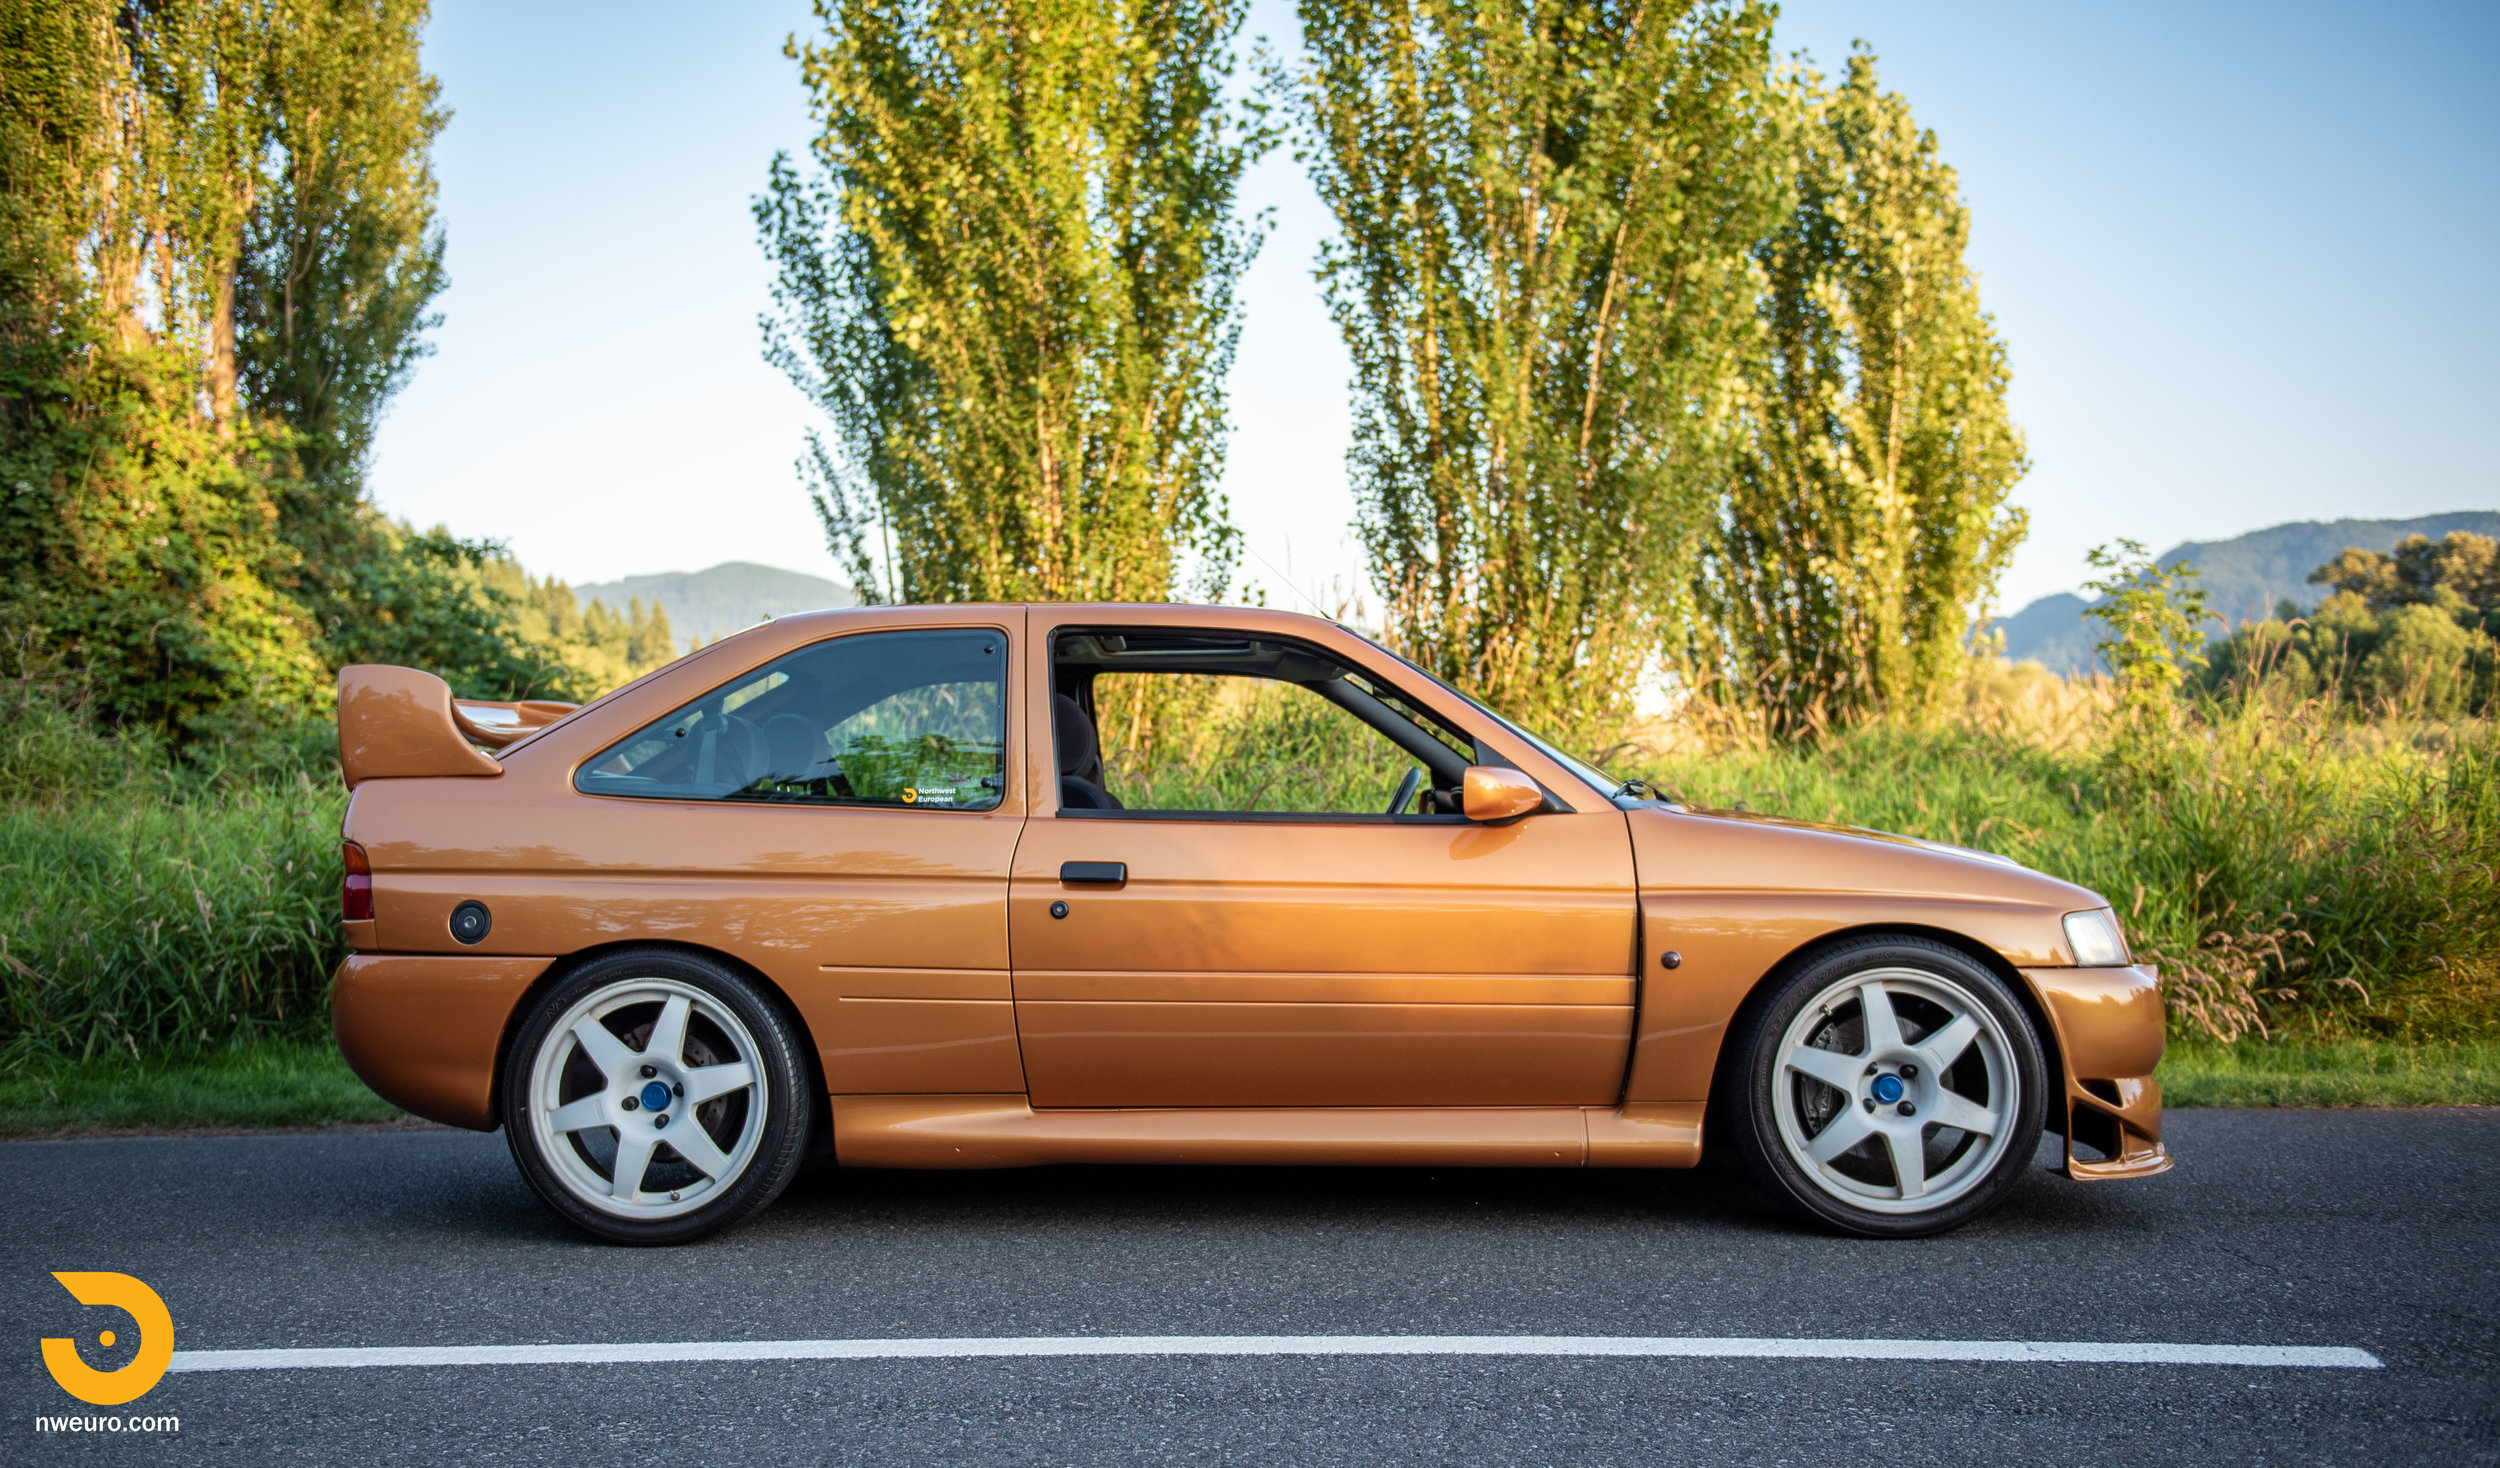 1995 Ford Escort Cosworth RS Gold-8.jpg